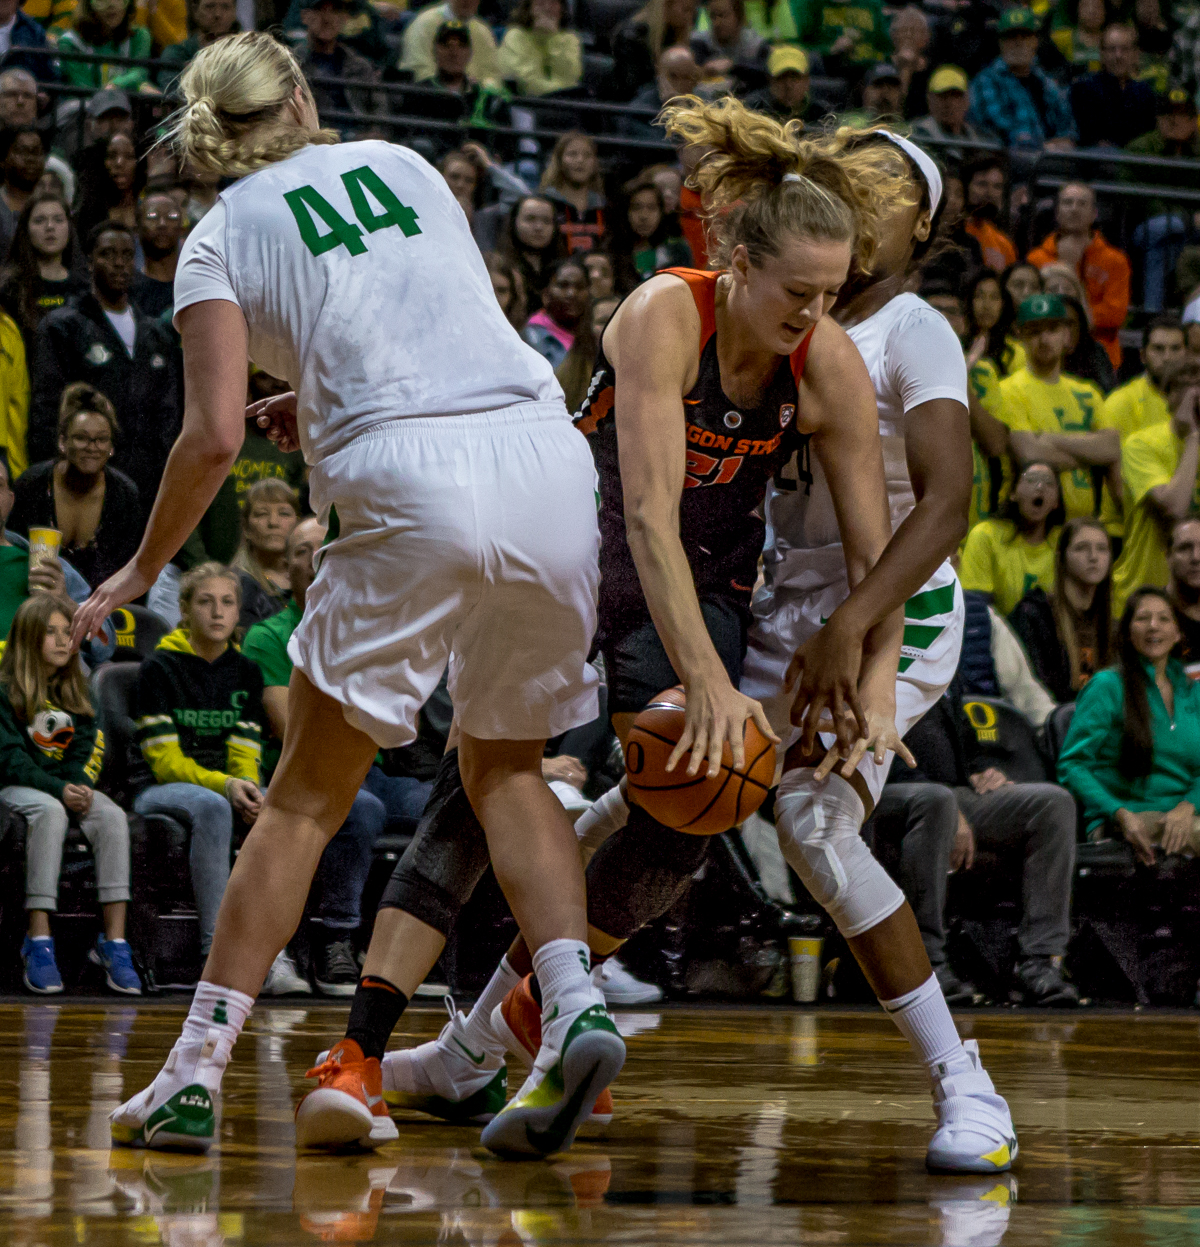 Oregon State center Marie Gülich attempts to push past Oregon forwards Ruthy Hebard (#24) and Mallory McGwire (#44). The Oregon Ducks defeated the Oregon State Beavers 75-63 on Sunday afternoon in front of a crowd of 7,249 at Matthew Knight Arena. The Ducks and Beavers split the two game Civil War with the Beavers defeating the Ducks on Friday night in Corvallis. The Ducks had four players in double digits: Satou Sabally with 21 points, Maite Cazorla with 16, Sabrina Ionescu with 15, and Mallory McGwire with 14. The Ducks shot 48.4% from the floor compared to the Beavers 37.3%. The Ducks are now 7-1 in conference play. Photo by Ben Lonergan, Oregon News Lab